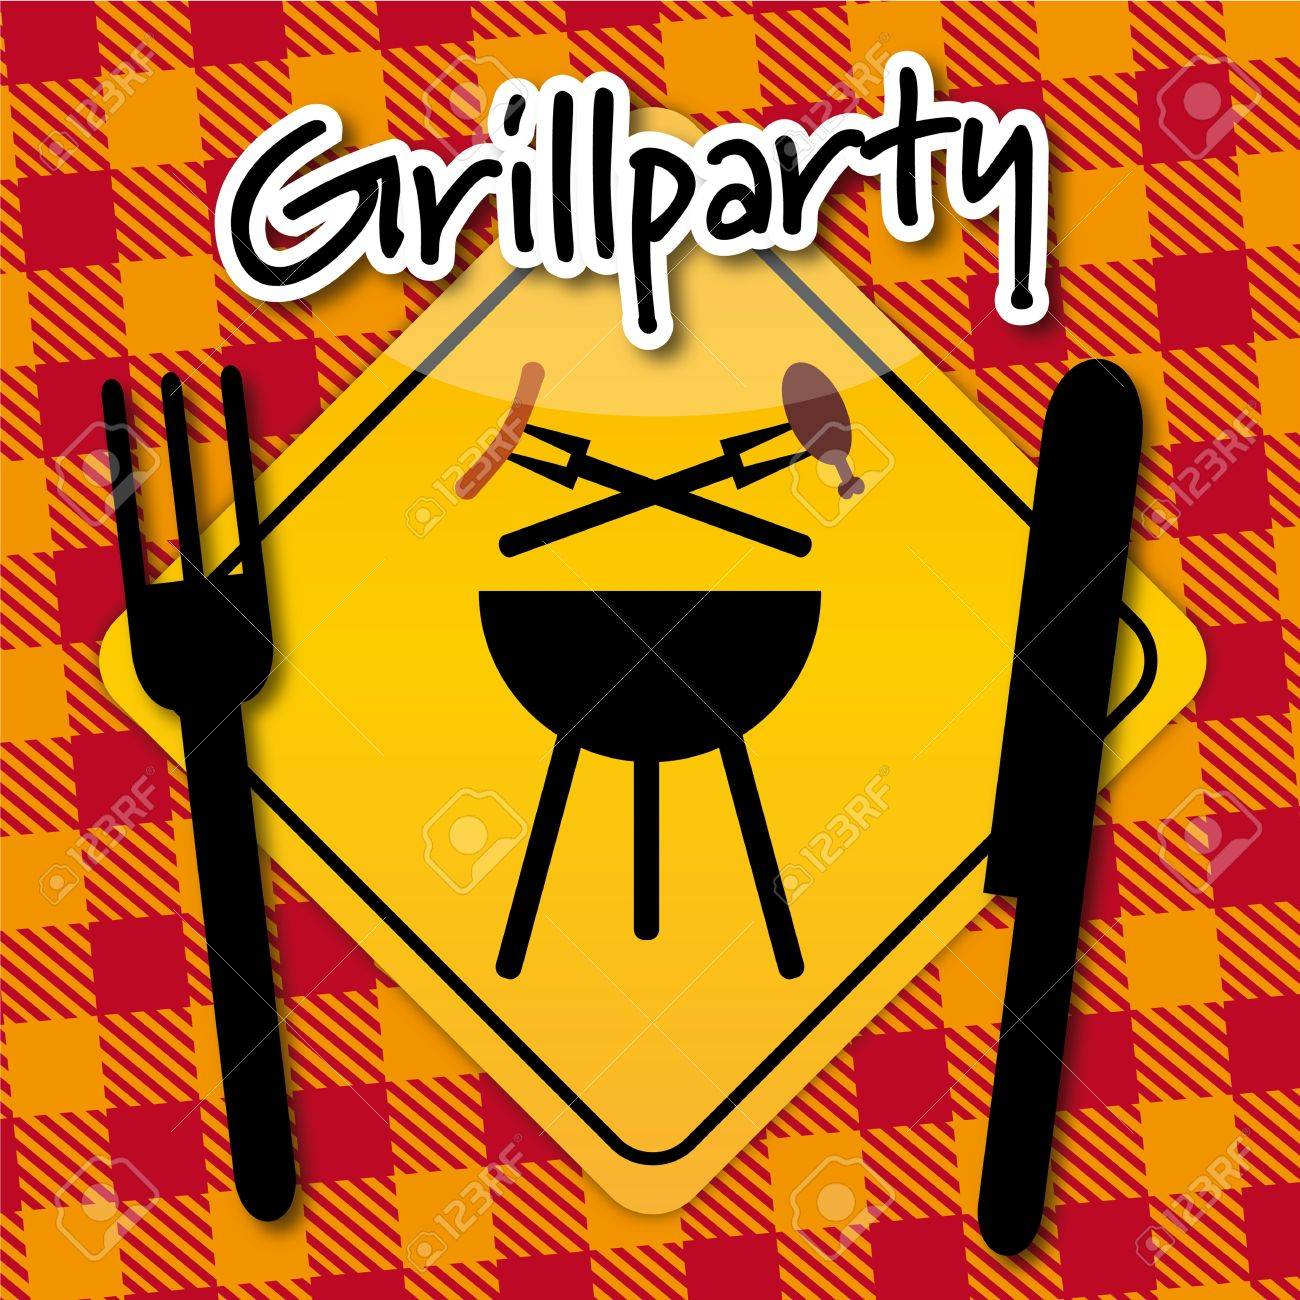 grillparty einladung royalty free cliparts, vectors, and stock, Einladung